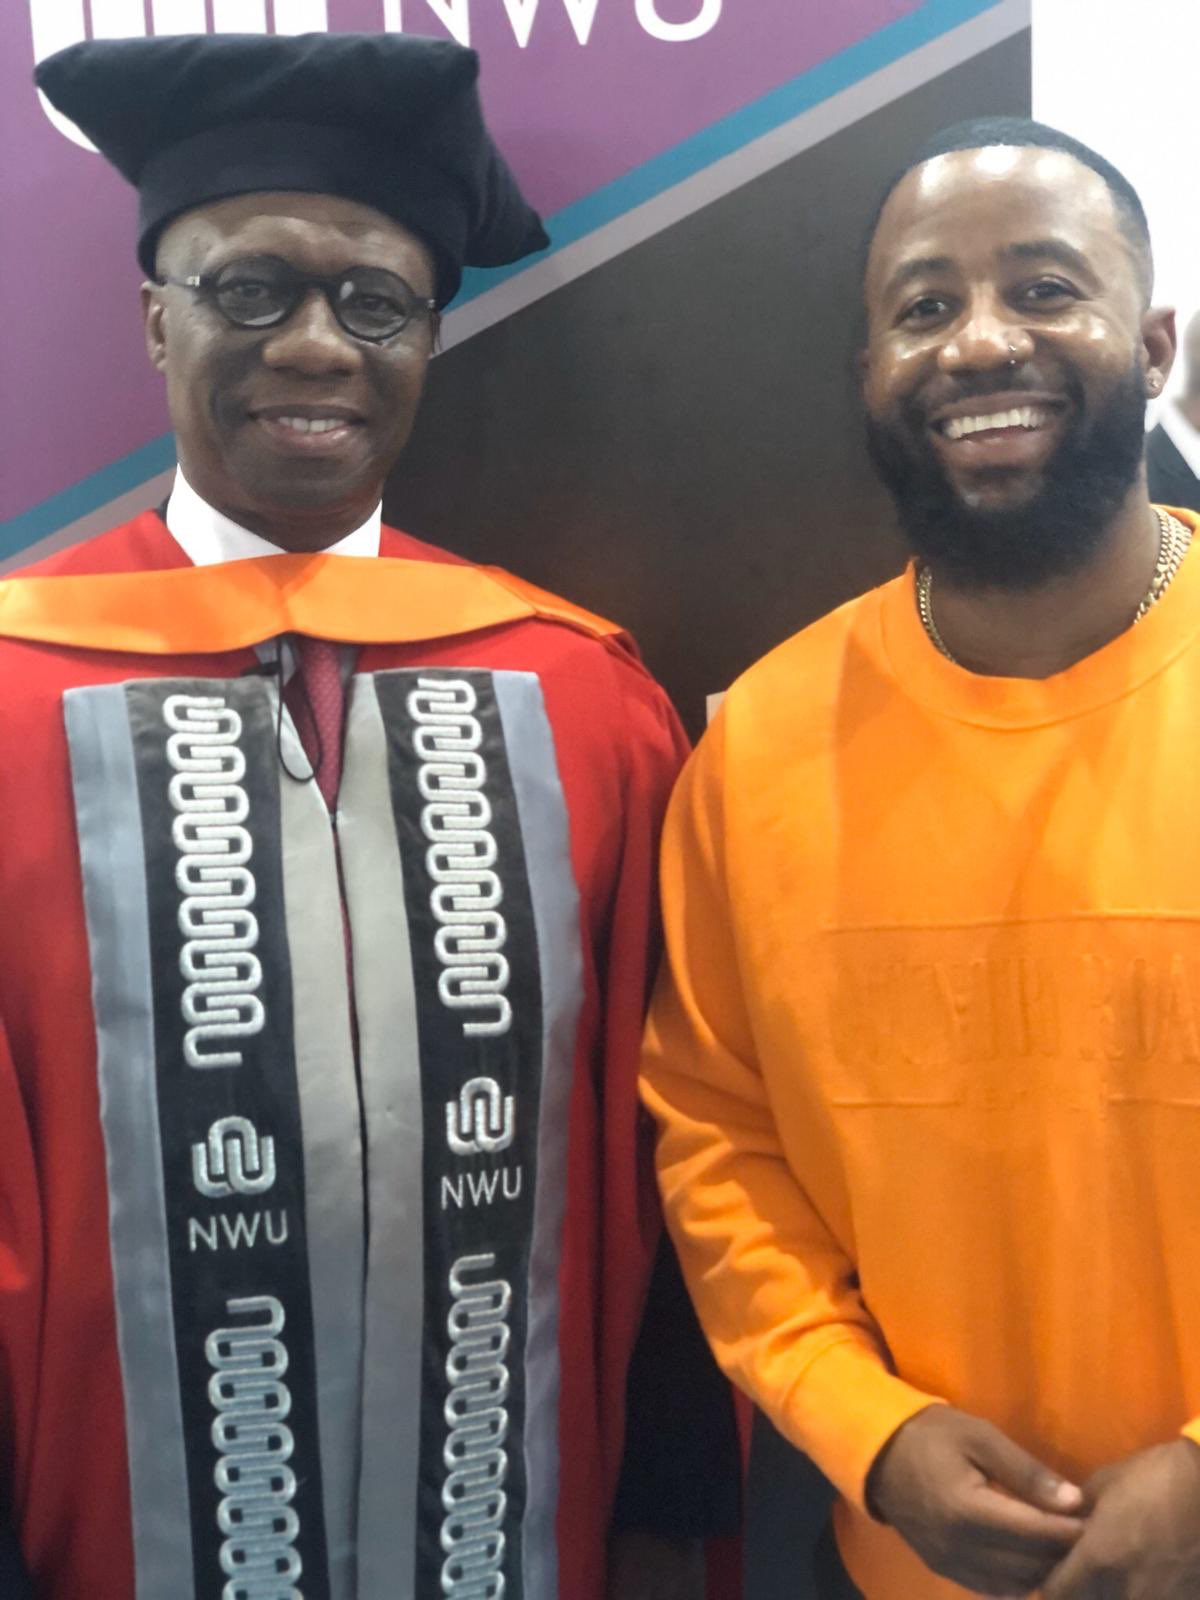 Cassper Nyovest's Mentor 'Keith Bothongo' Receives A Doctorate Degree From The University Of North West.